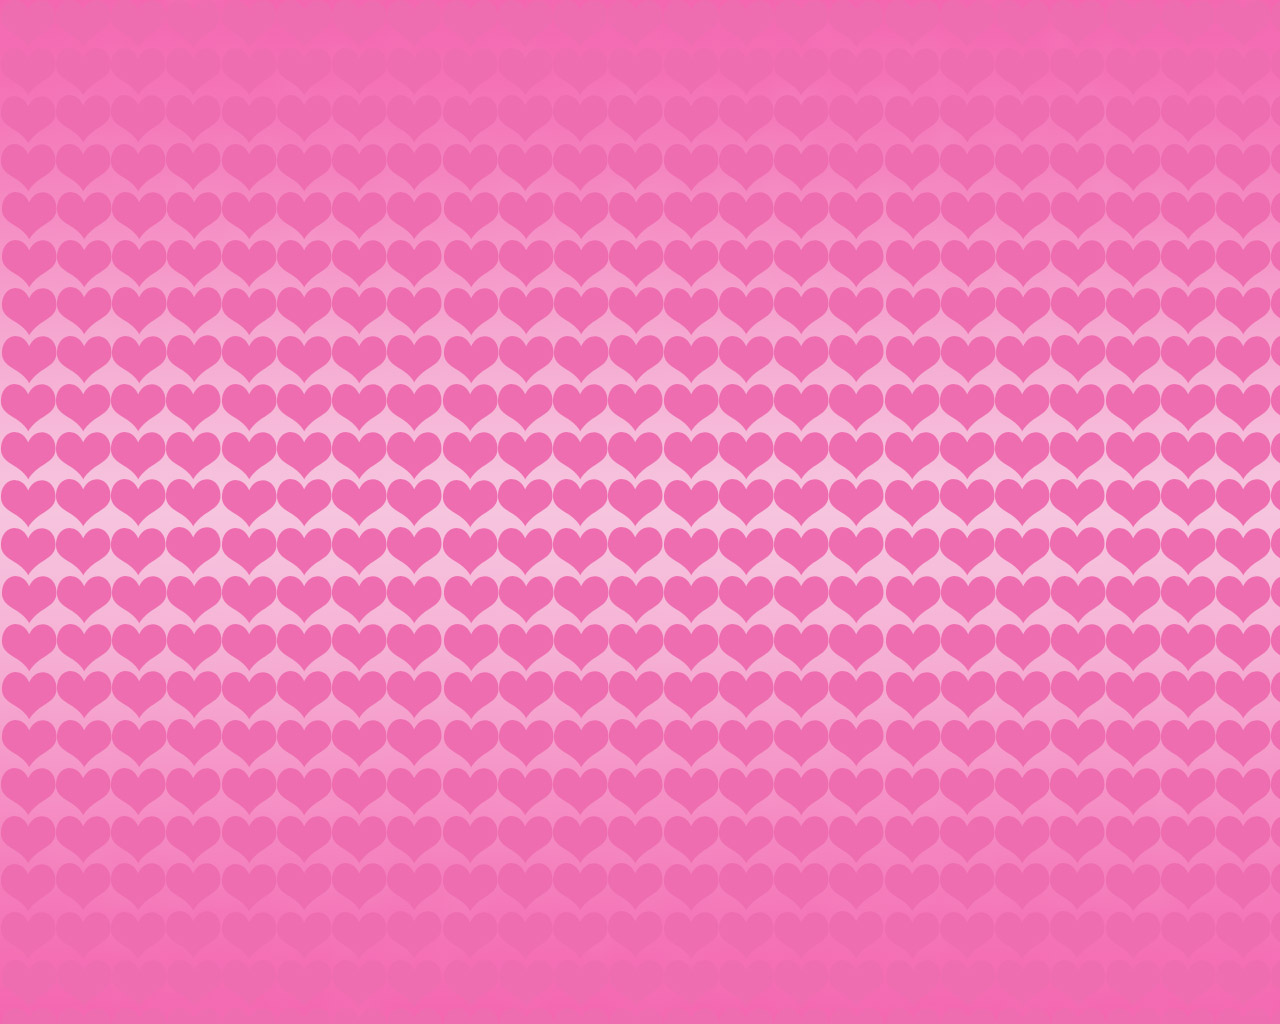 Pink Hd Abstract Laptops Mobile Phones Colorful Girly Backgrounds ...